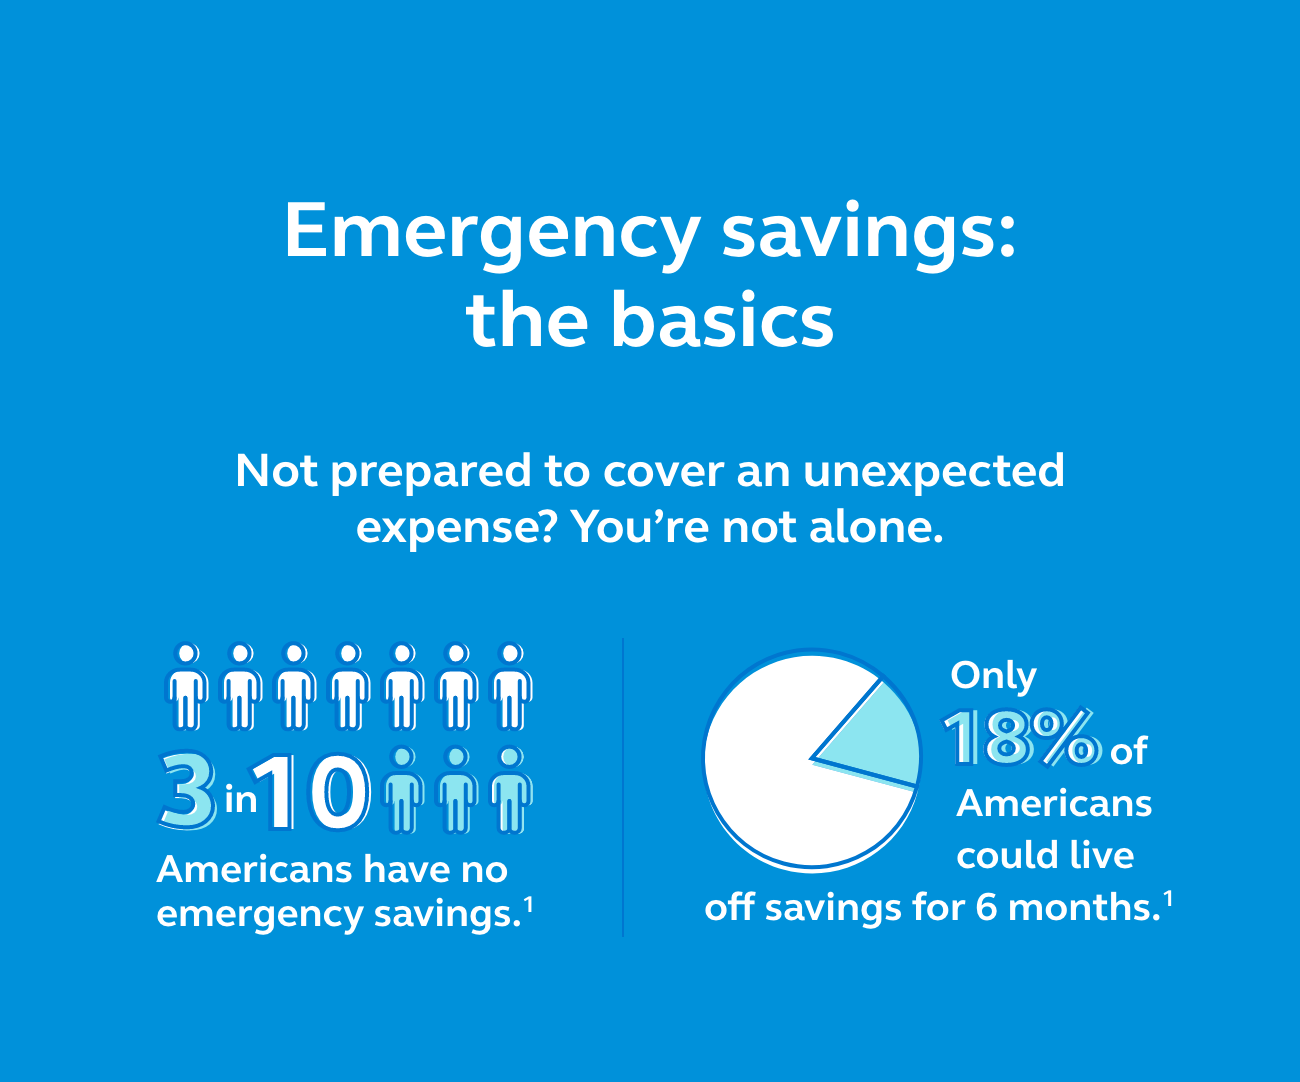 Graphic showing that 3 in 10 Americans have no emergency savings and only 18% could live off savings for 6 months.